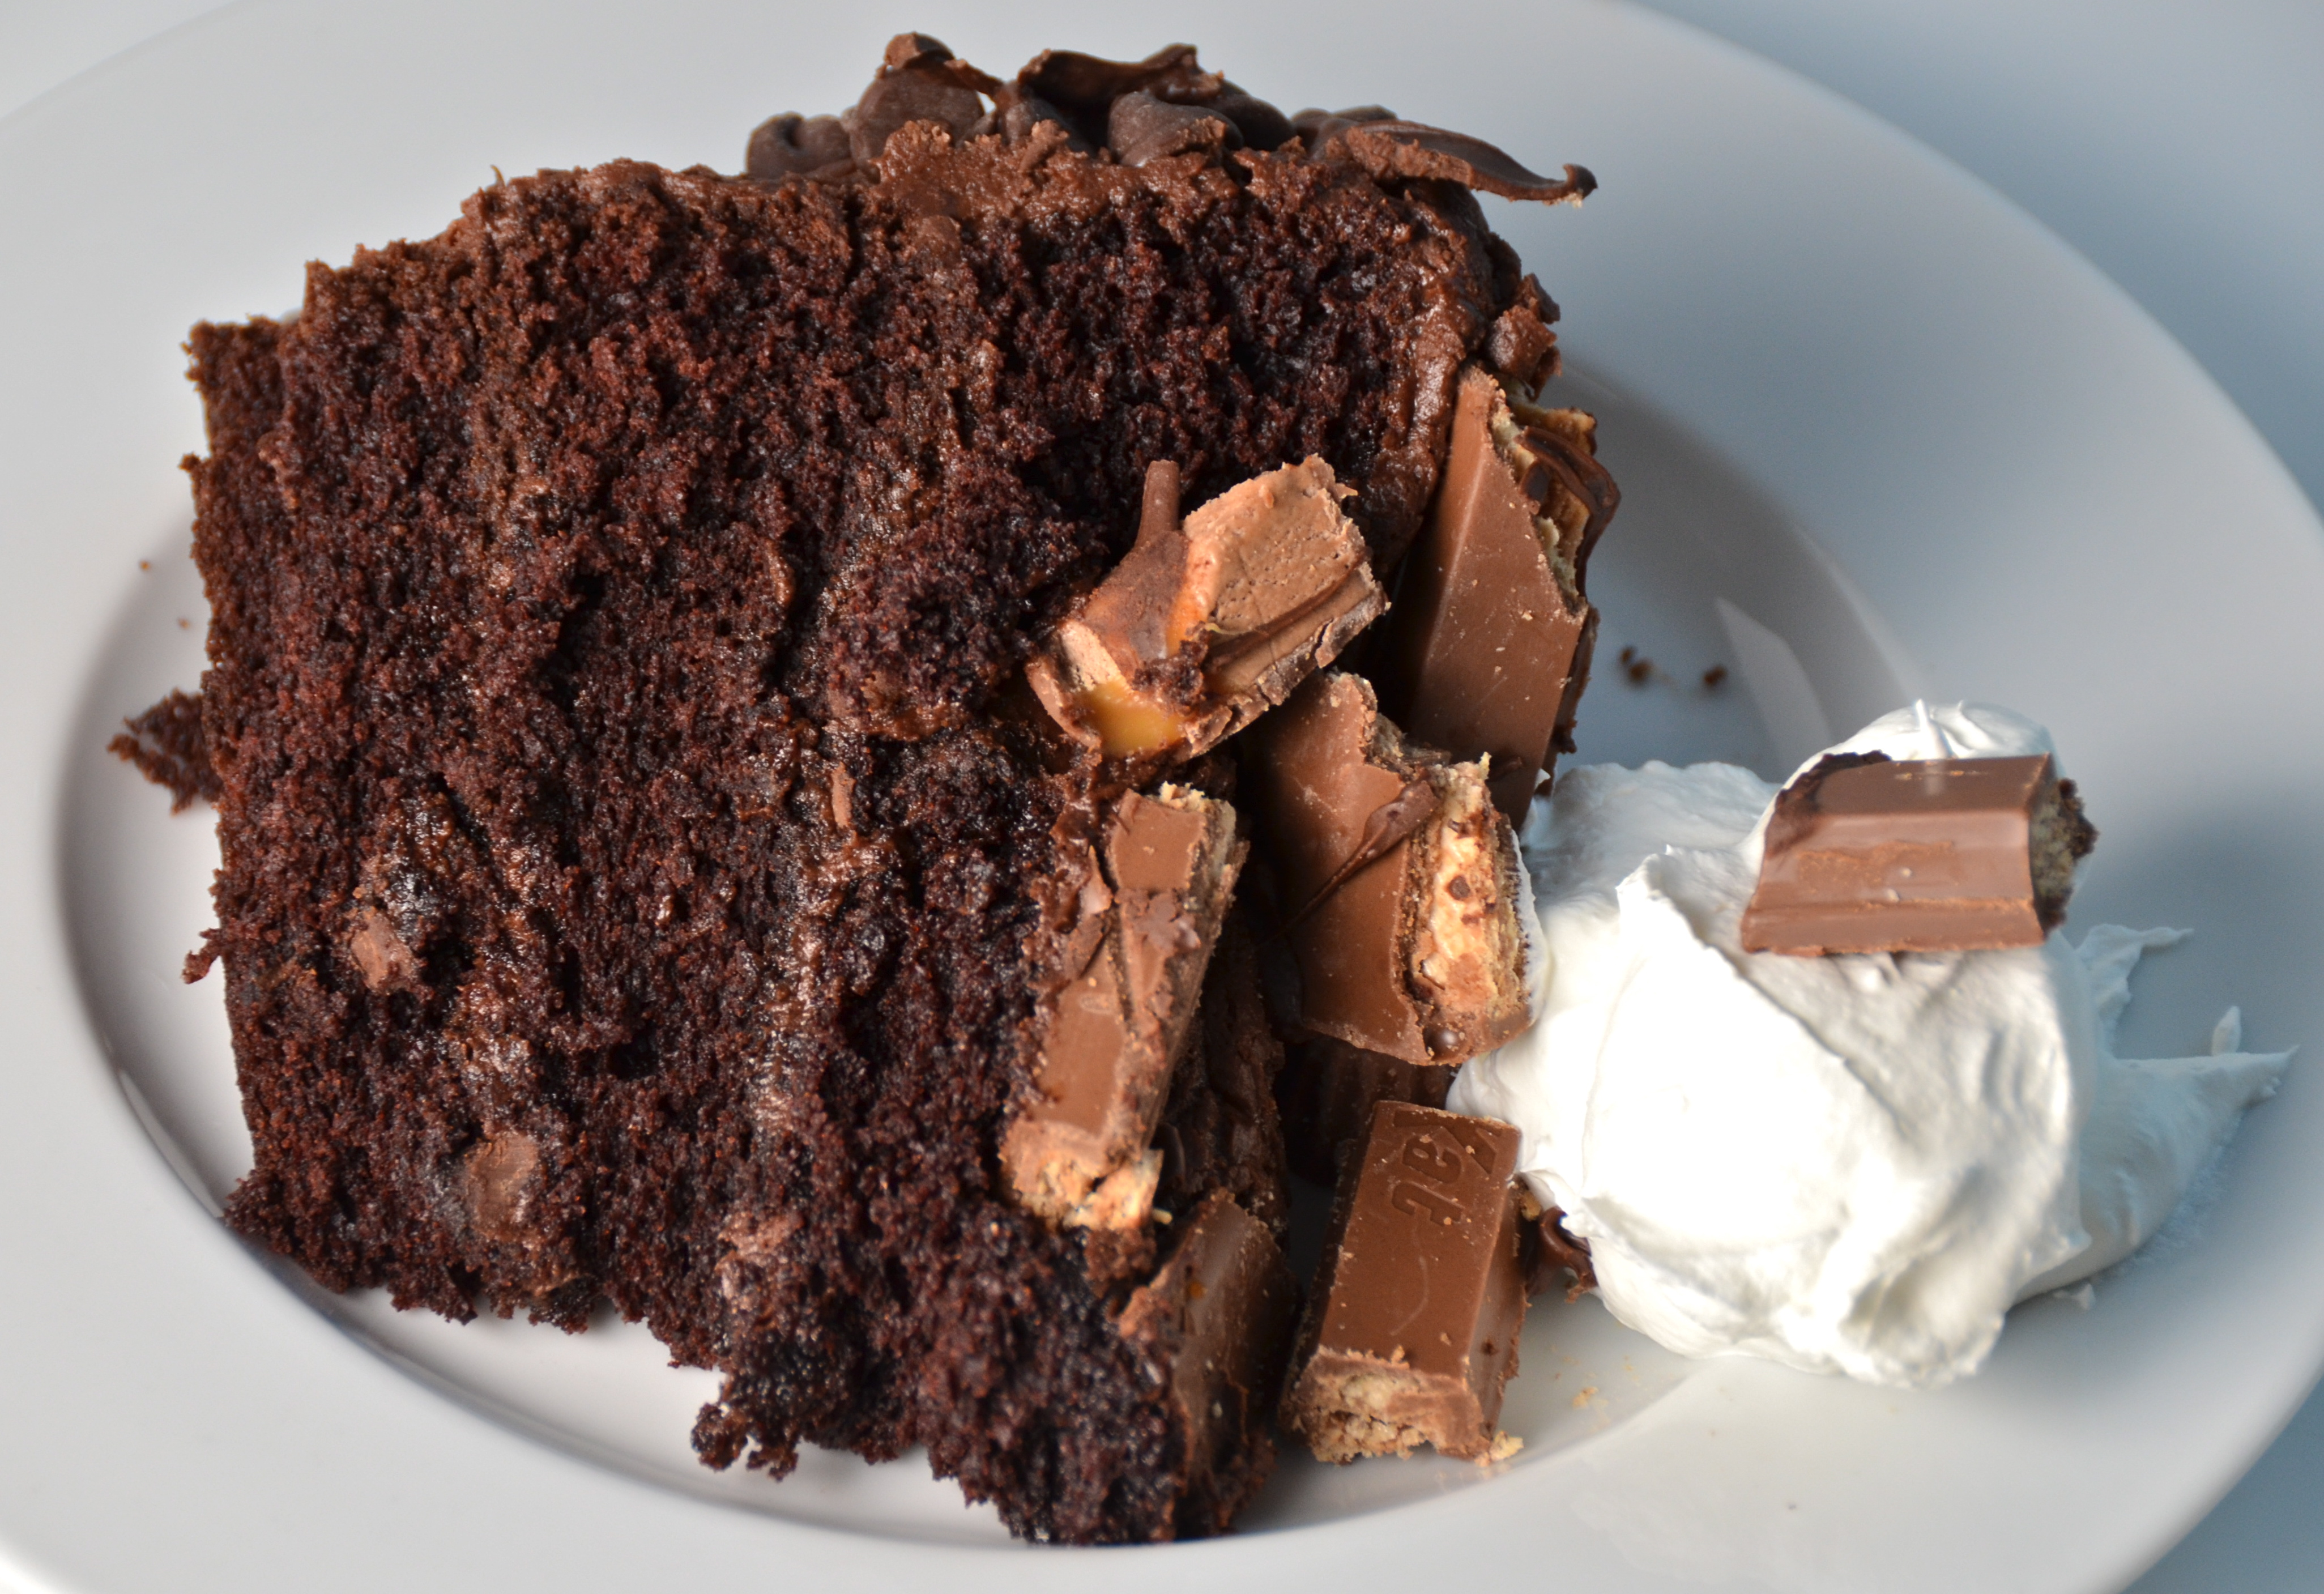 Chocolate Wasted Cake. Extremely Good Music From Stefan Noons. | I ...